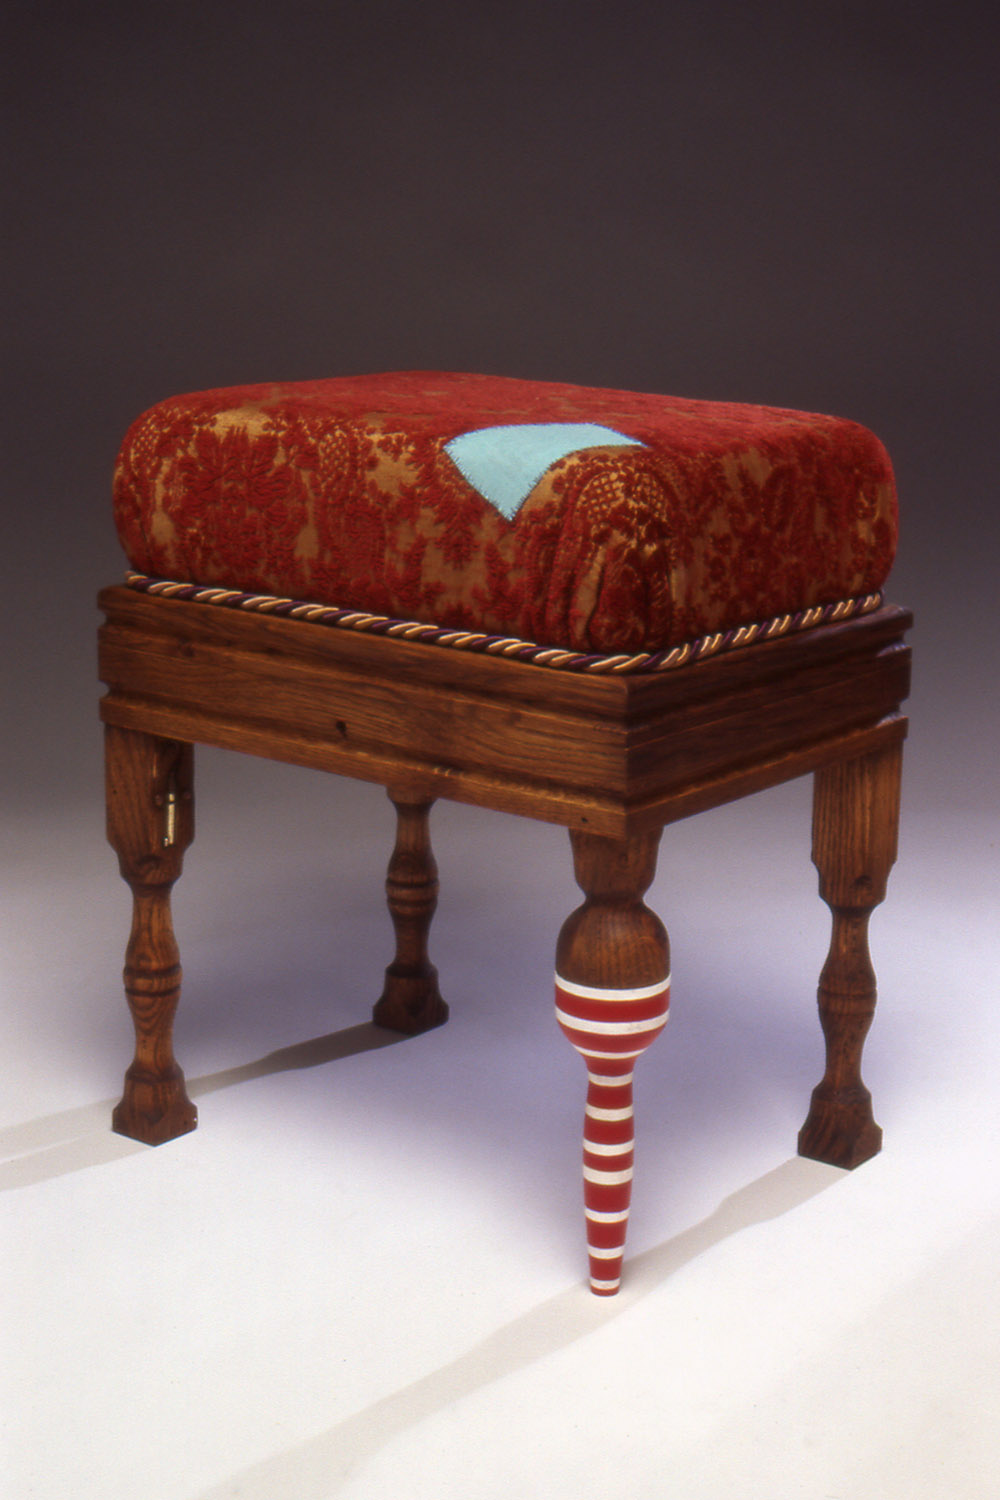 Pirate Stool, 2006